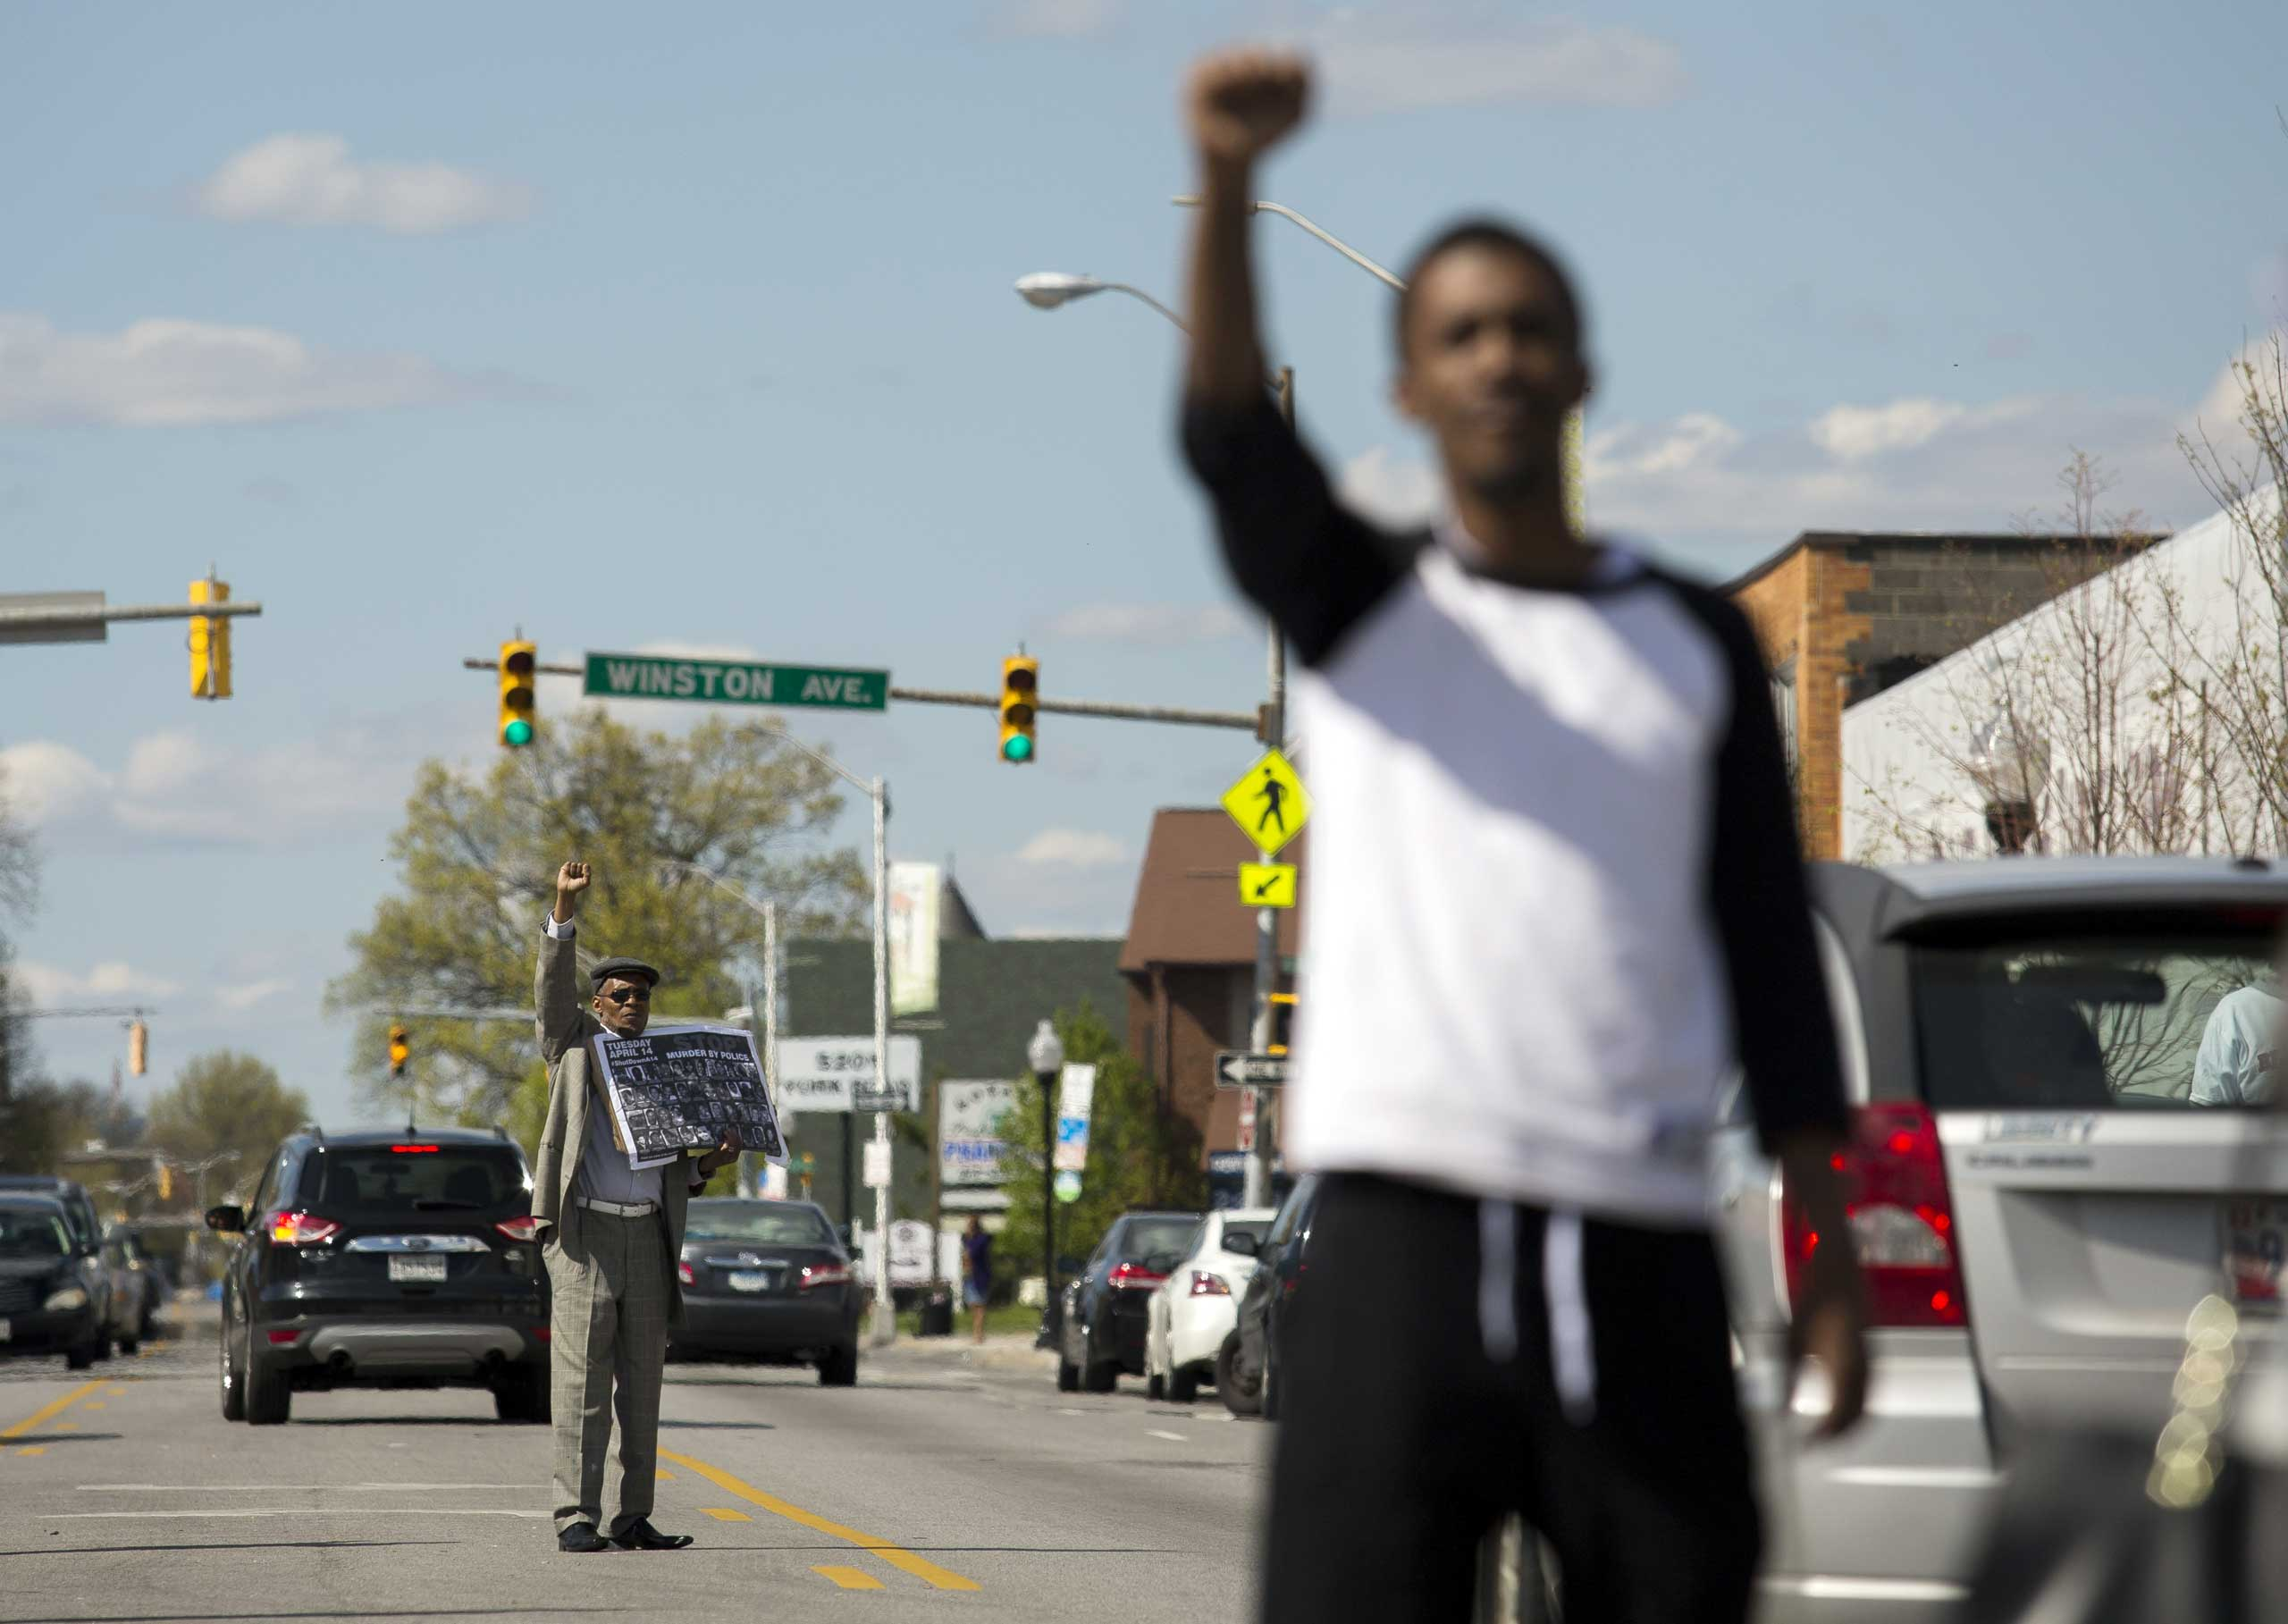 Protestors encourage passing cars to honk while standing in the middle of York Road near Vaughn  Greene Funeral Services during the wake of Freddie Gray in Baltimore on April 26, 2015.